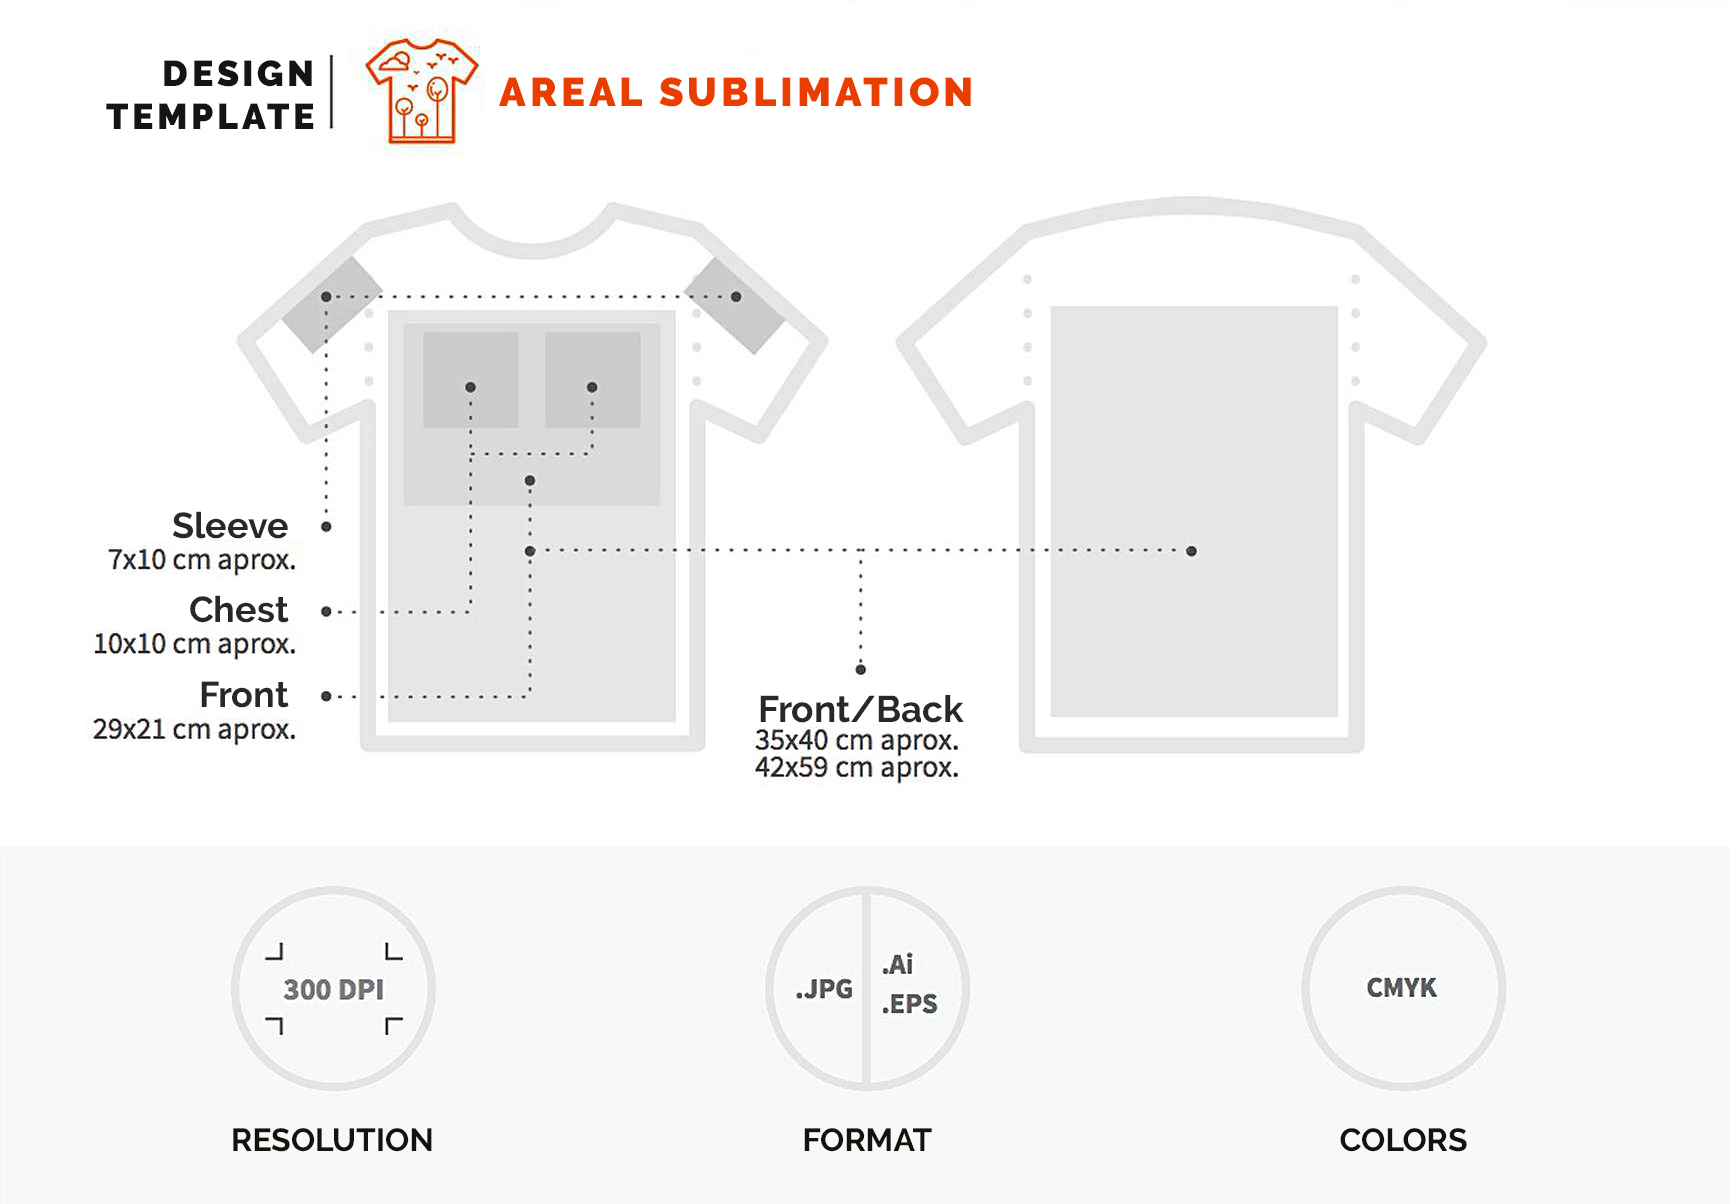 areal-sublimation-for-tshirt-printing-FLAAR-REPORTS